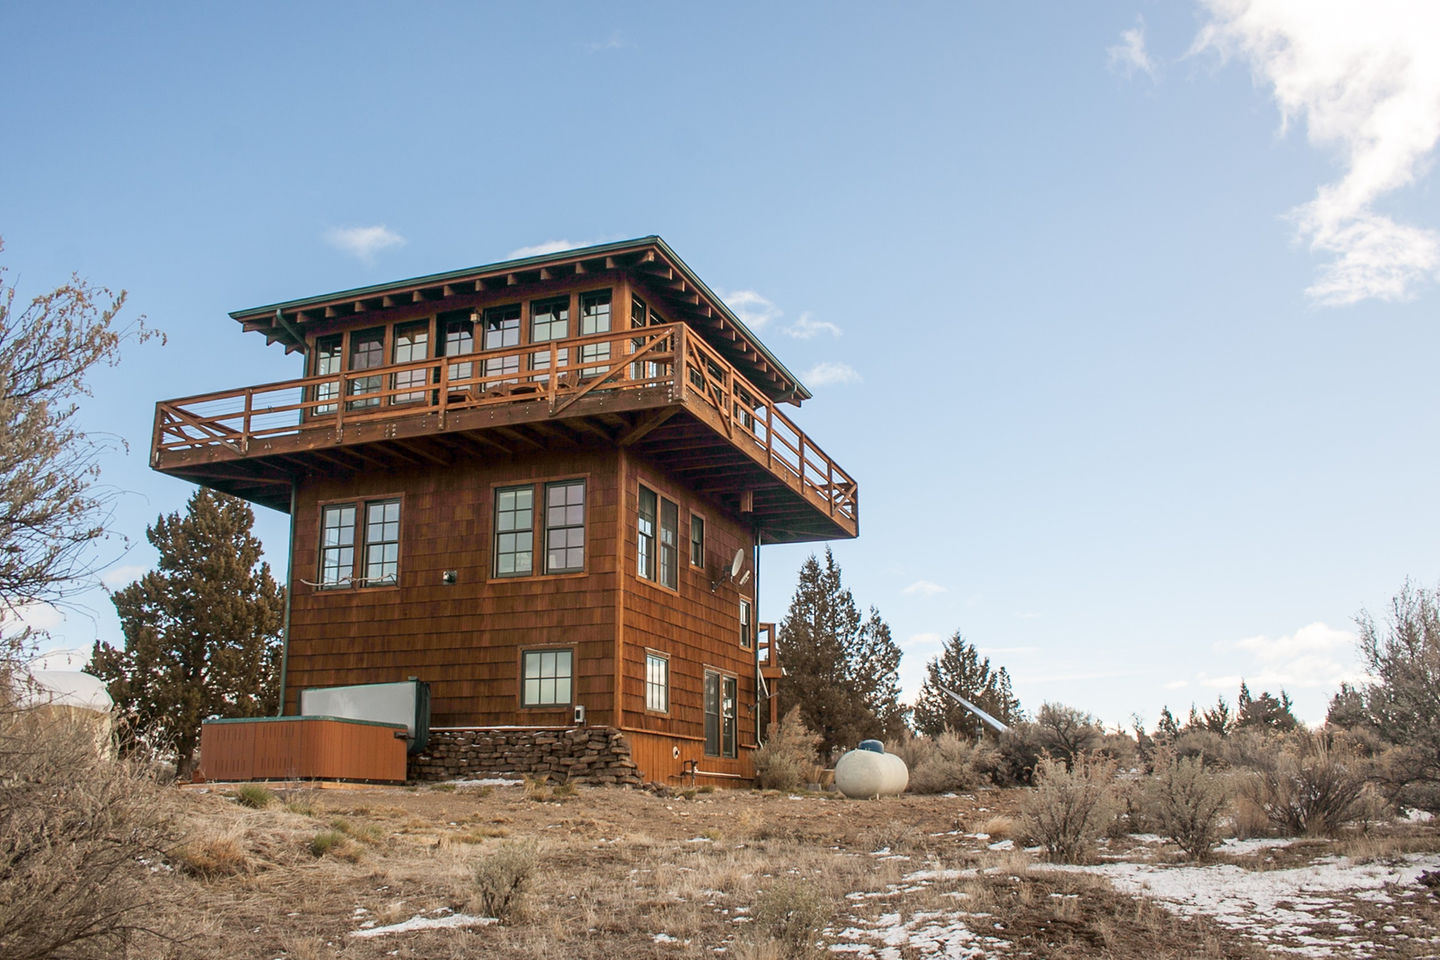 Gallery forest fire lookout tower house small house bliss for Fire tower plans